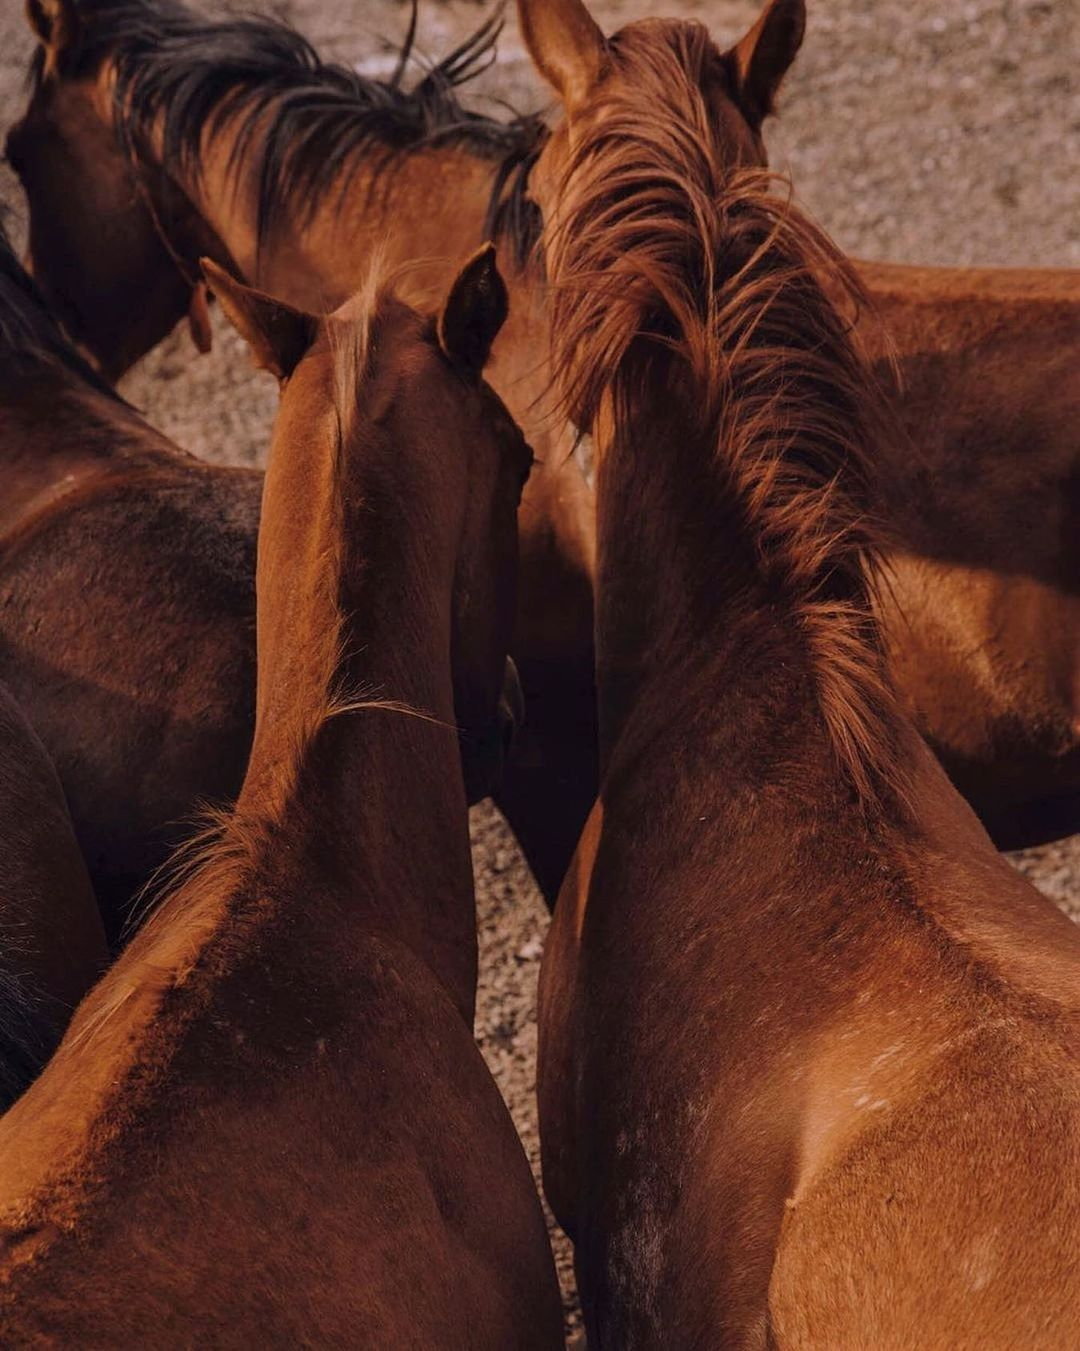 Close-Cropped image of horses gathered together in a field.